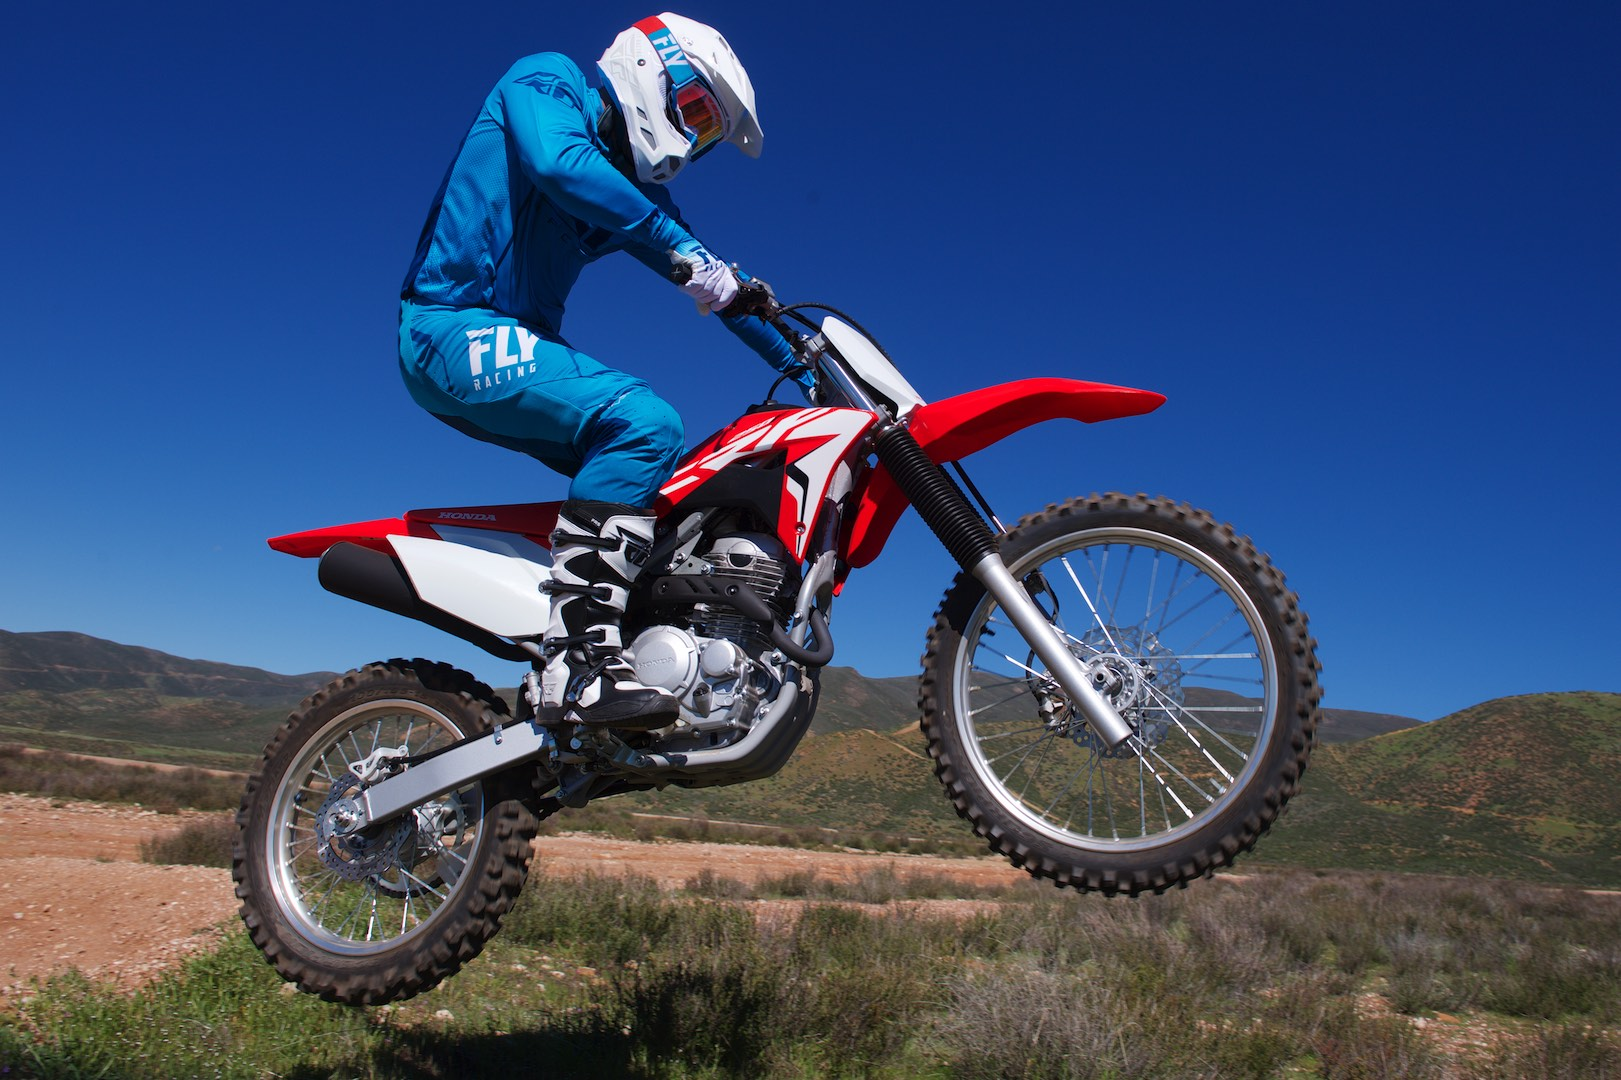 2019 Honda CRF250F Review (17 Fast Facts)